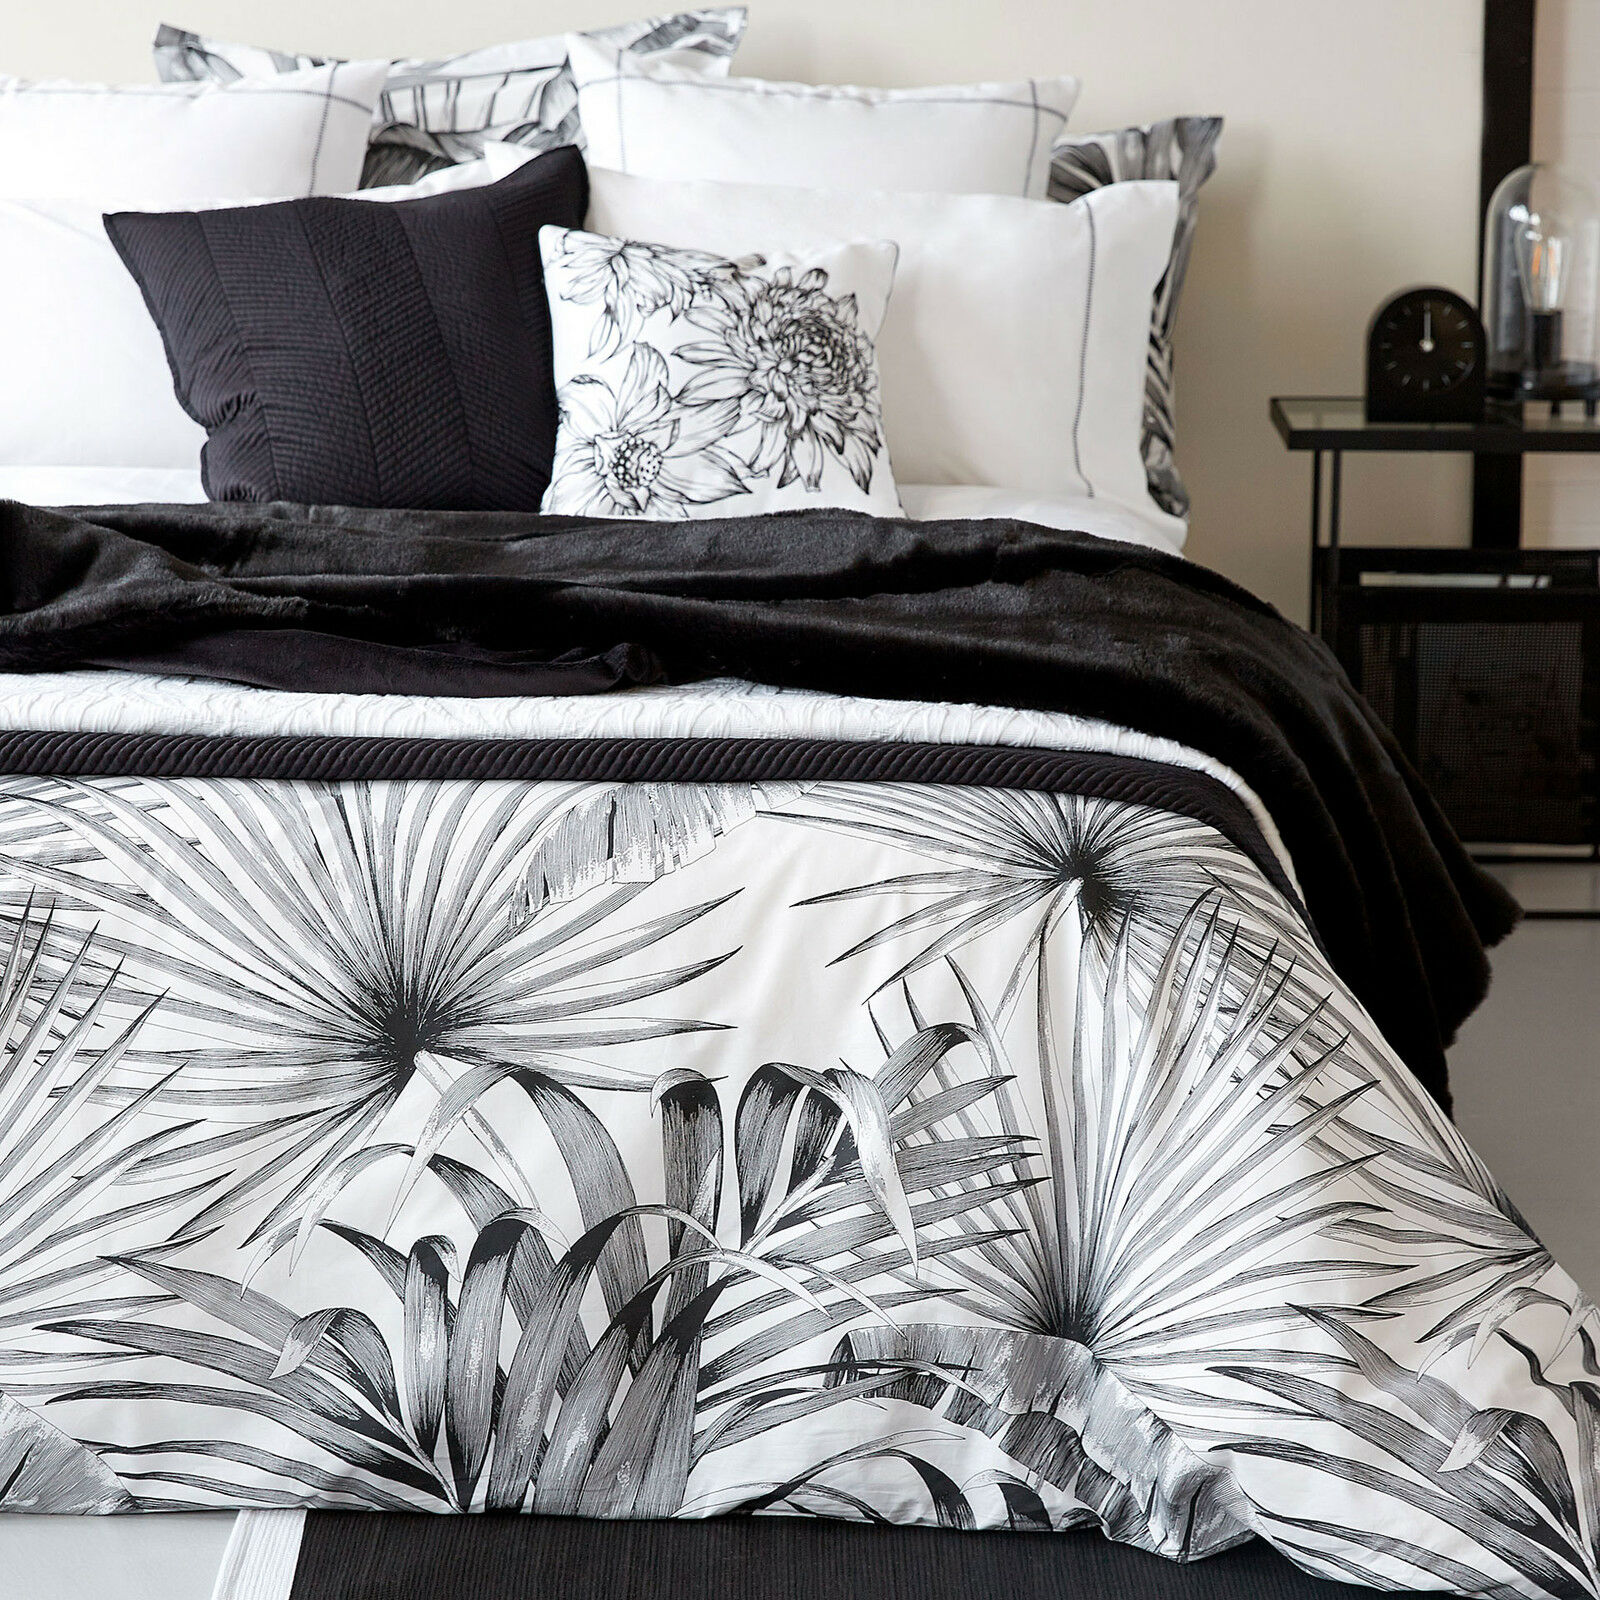 Zara Home Black White Palm Print Cotton King Size Duvet Cover Eur 79 94 Picclick Es